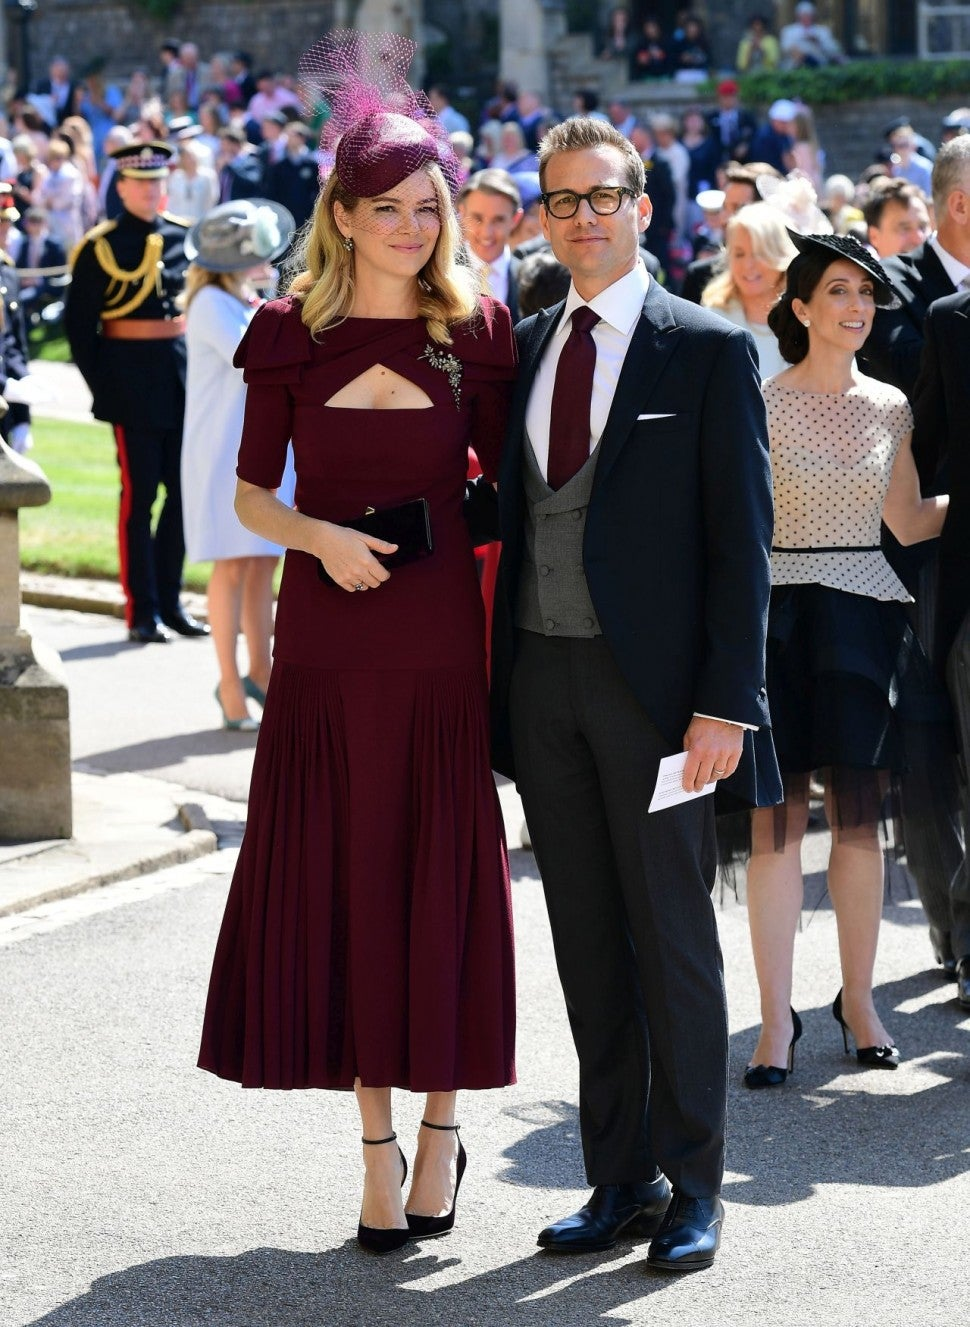 Gabriel Macht and his wife at Royal Wedding